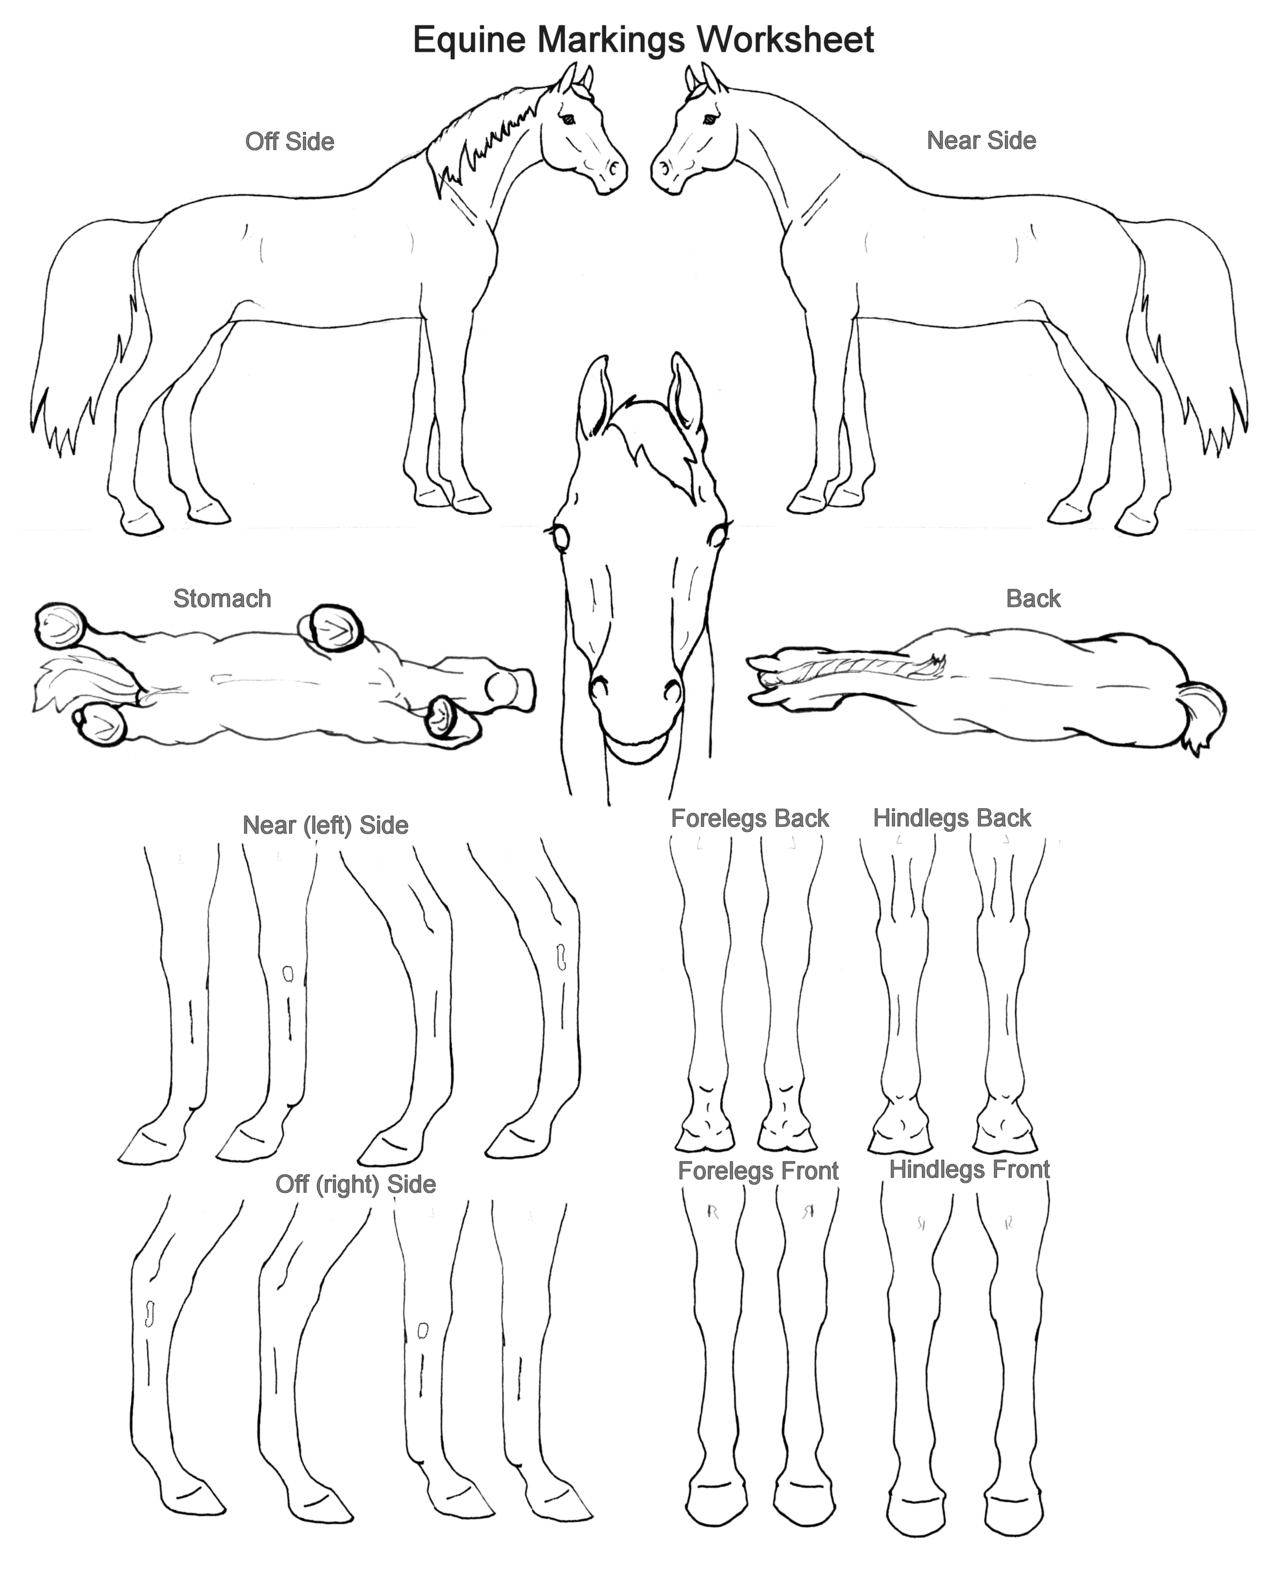 Equine Markings Worksheet